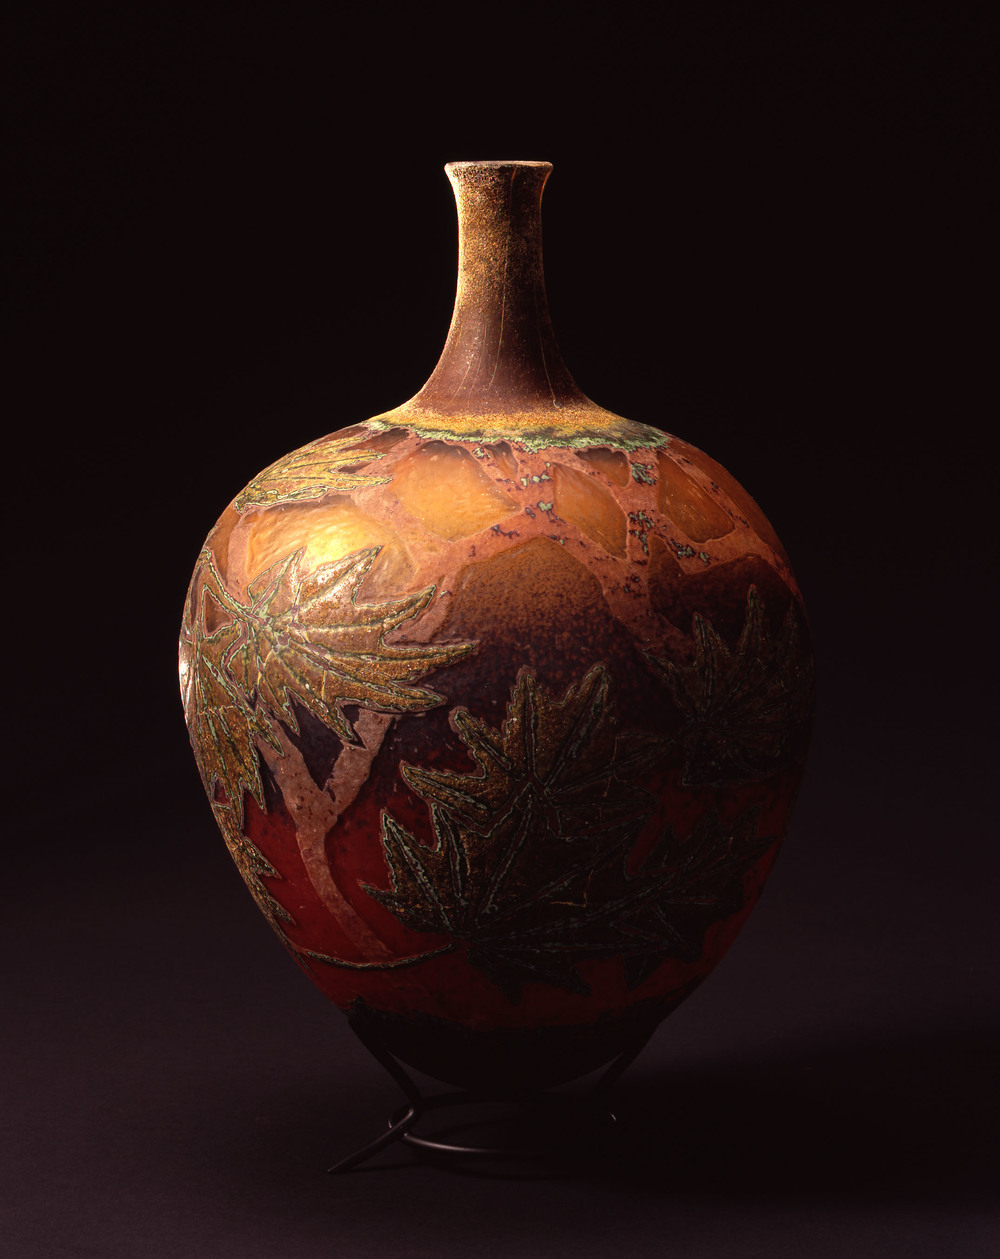 William Morris,  Vessel with Vine Maple Leaves    (2004, glass, 14 1/2 x 9 5/8 x 9 5/8 inches), WM.31